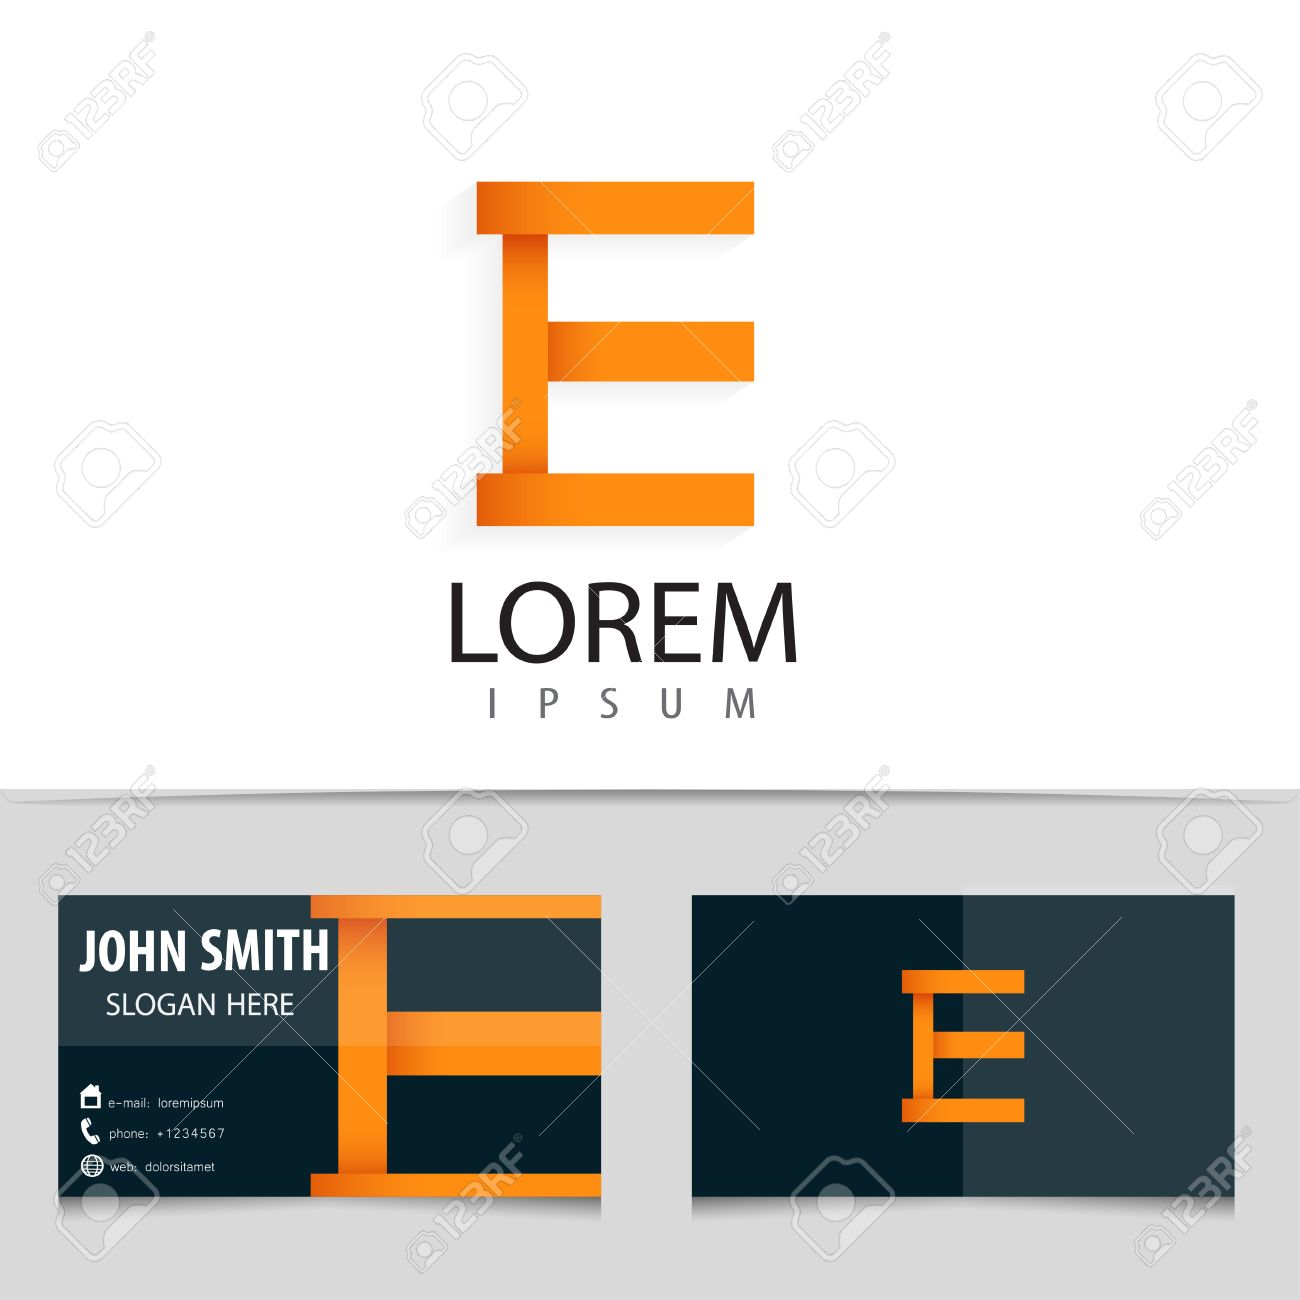 Electronic Business Cards Templates Image Collections Card Design